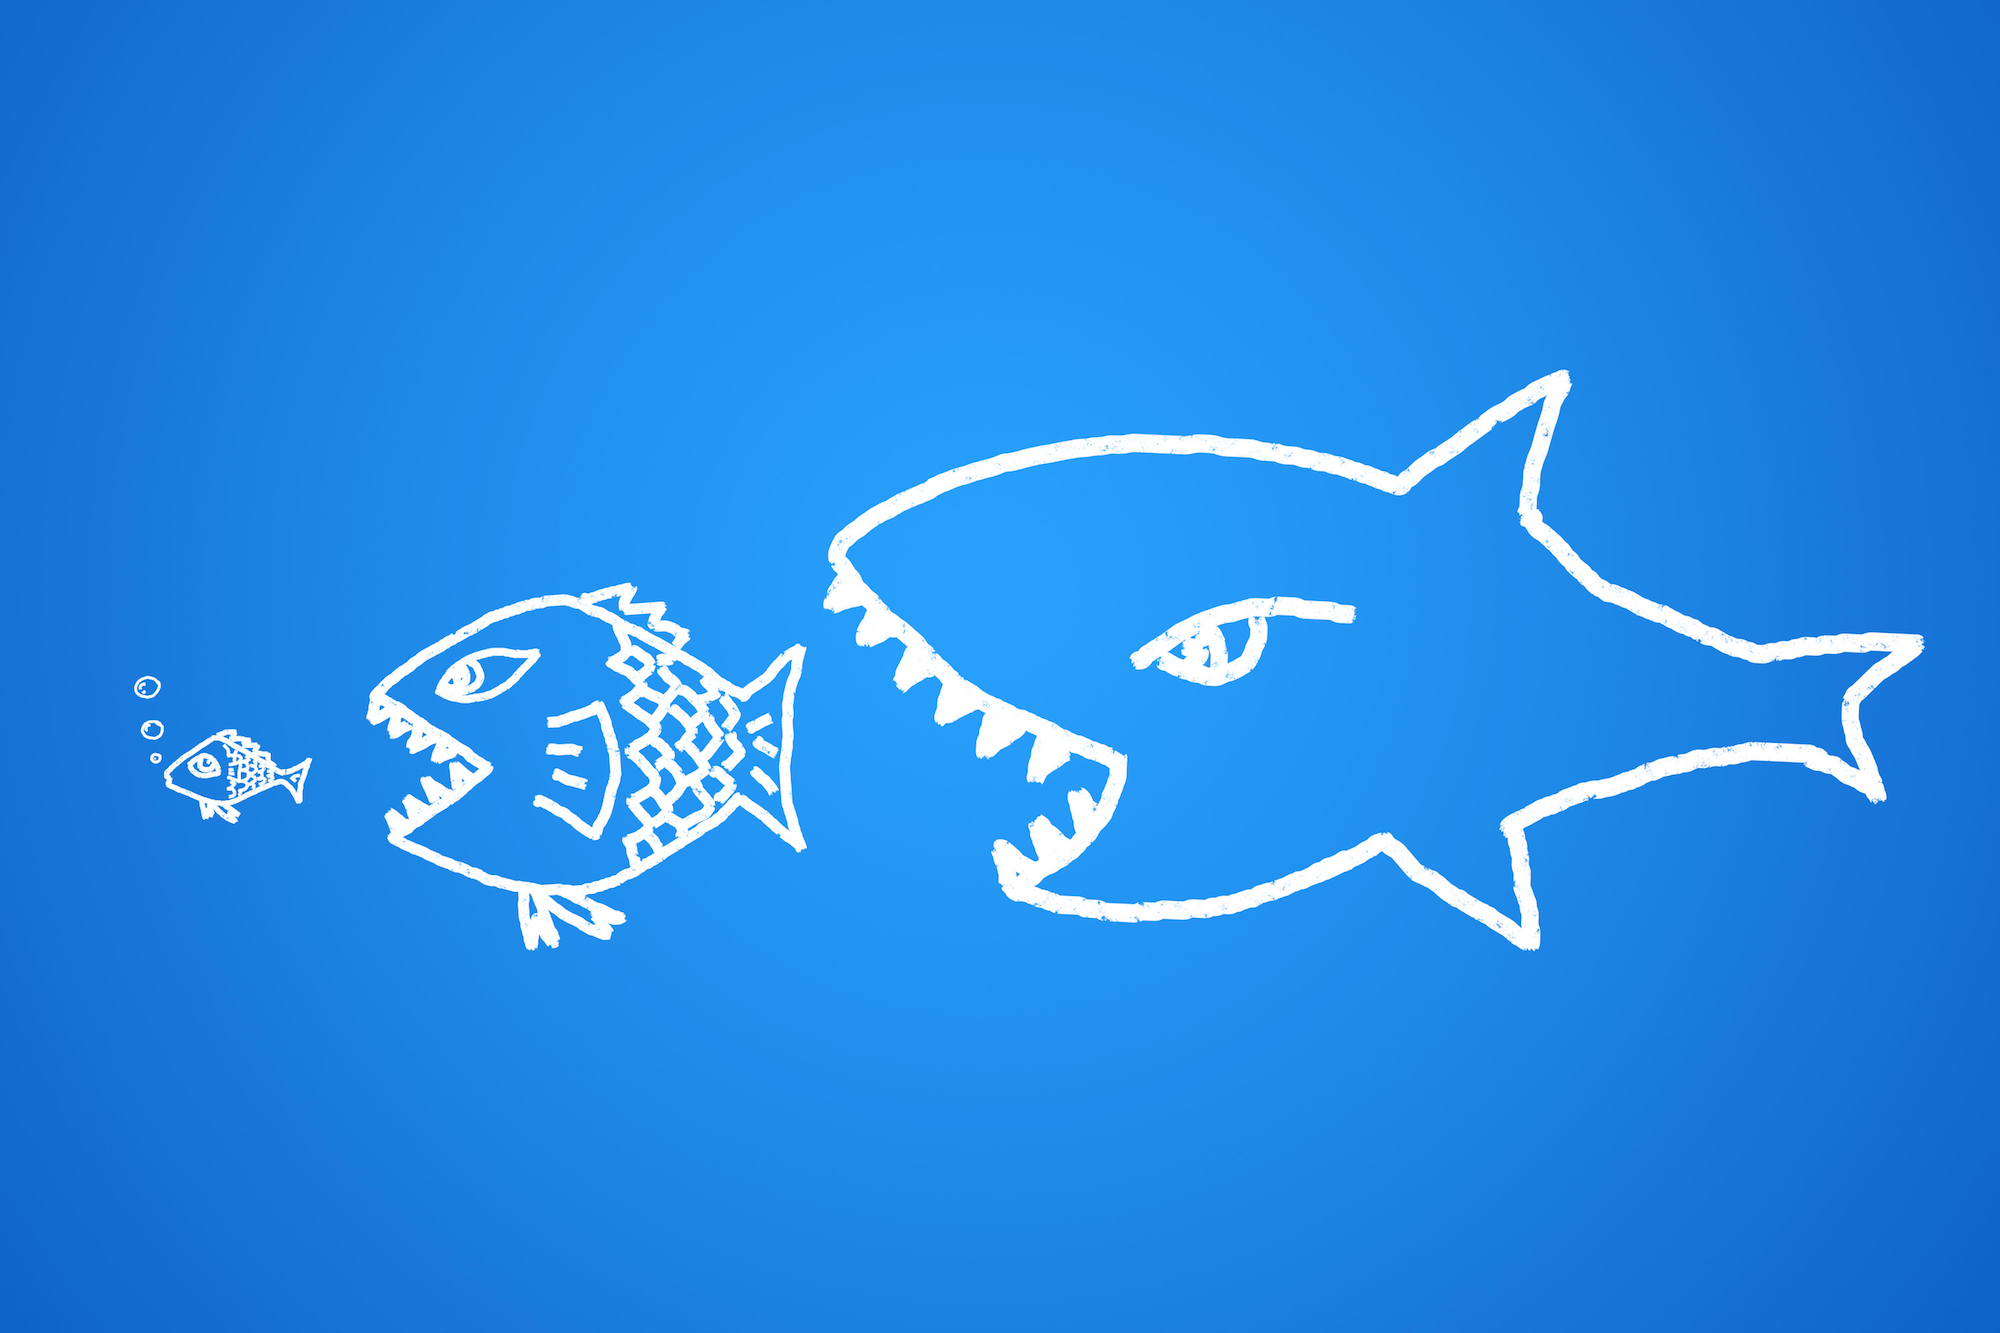 From lingerie to bio tech u s companies focus on europe for Big fish eat little fish